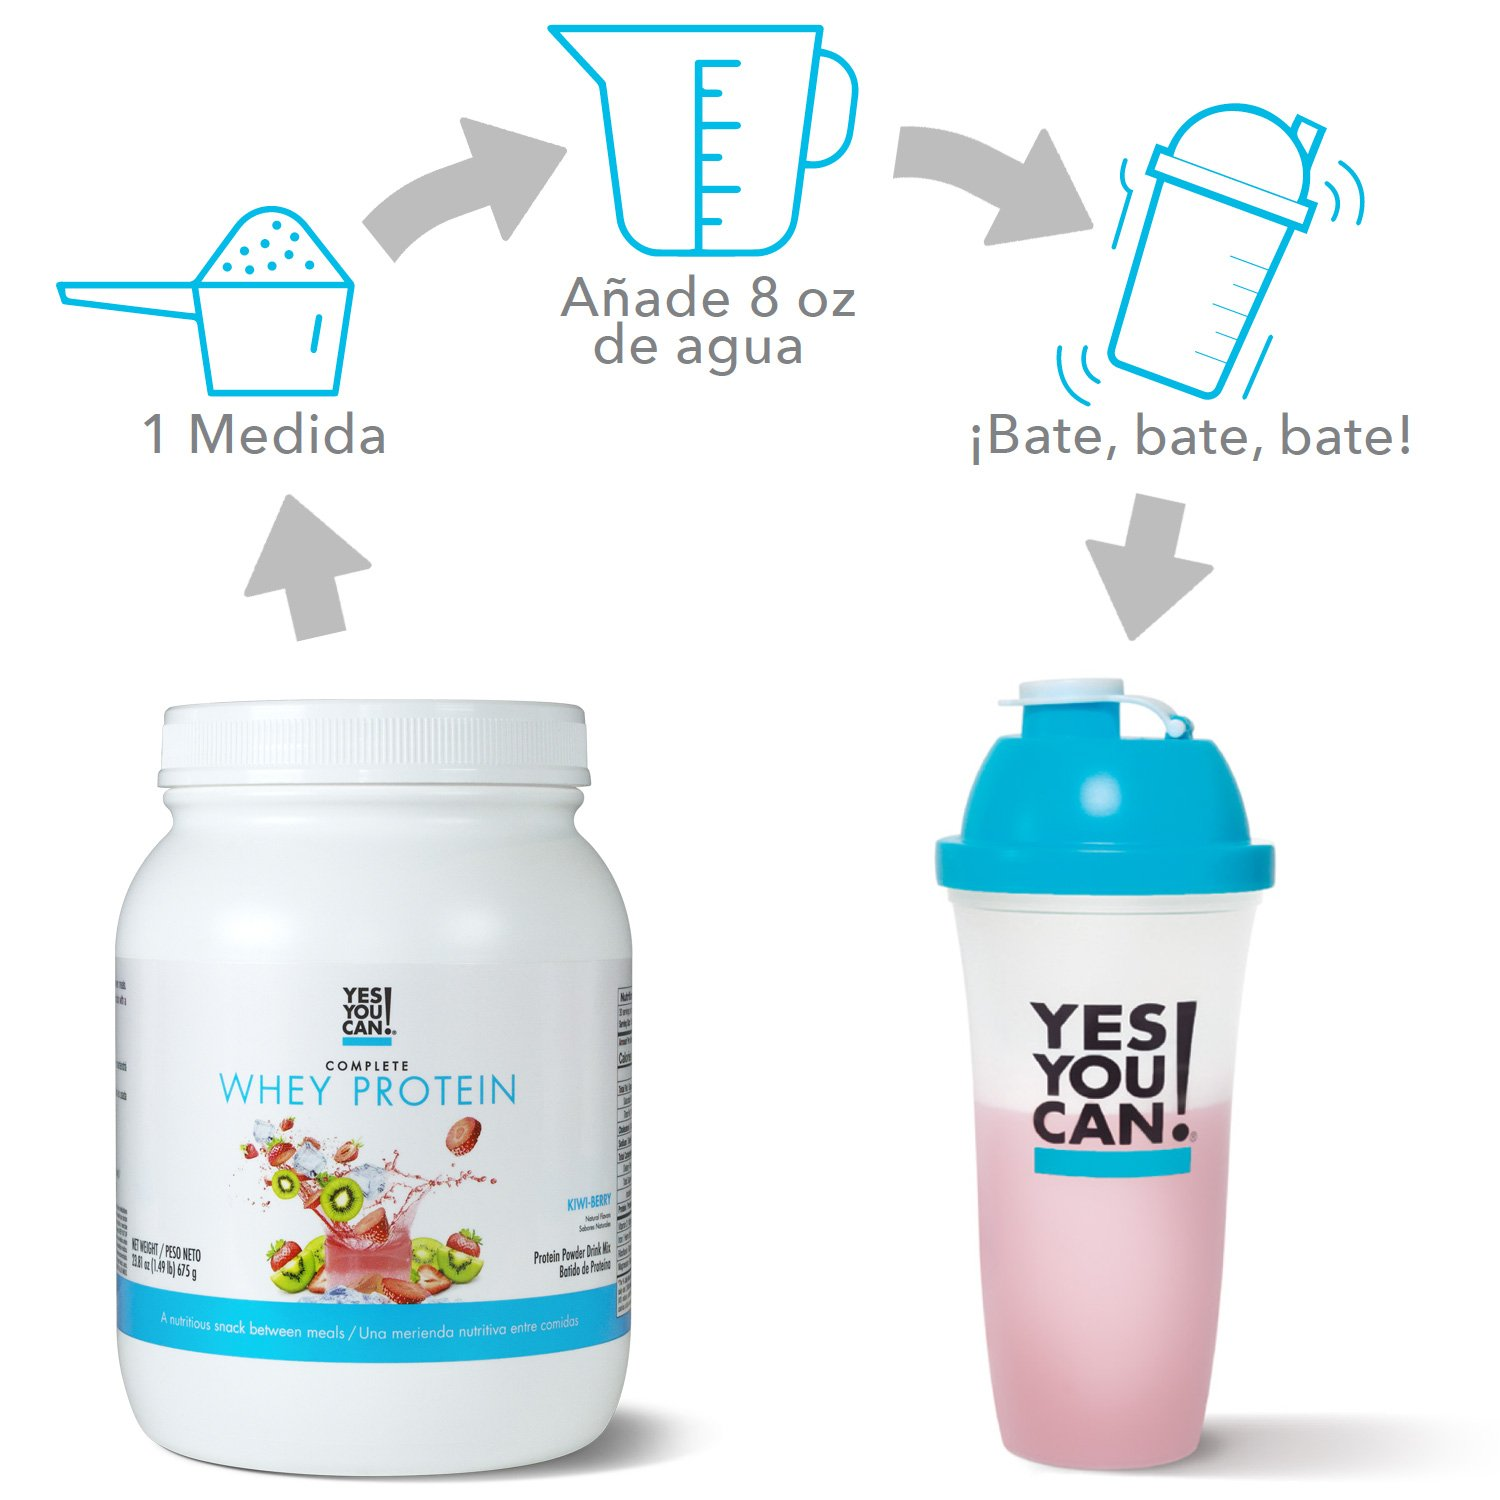 Complete Whey Protein, a Nutritious Snack Between Meals, 15 Grams of Protein, Helps Lose Weight and Build Muscle, Batidos de Proteína Completo para Bajar de ...